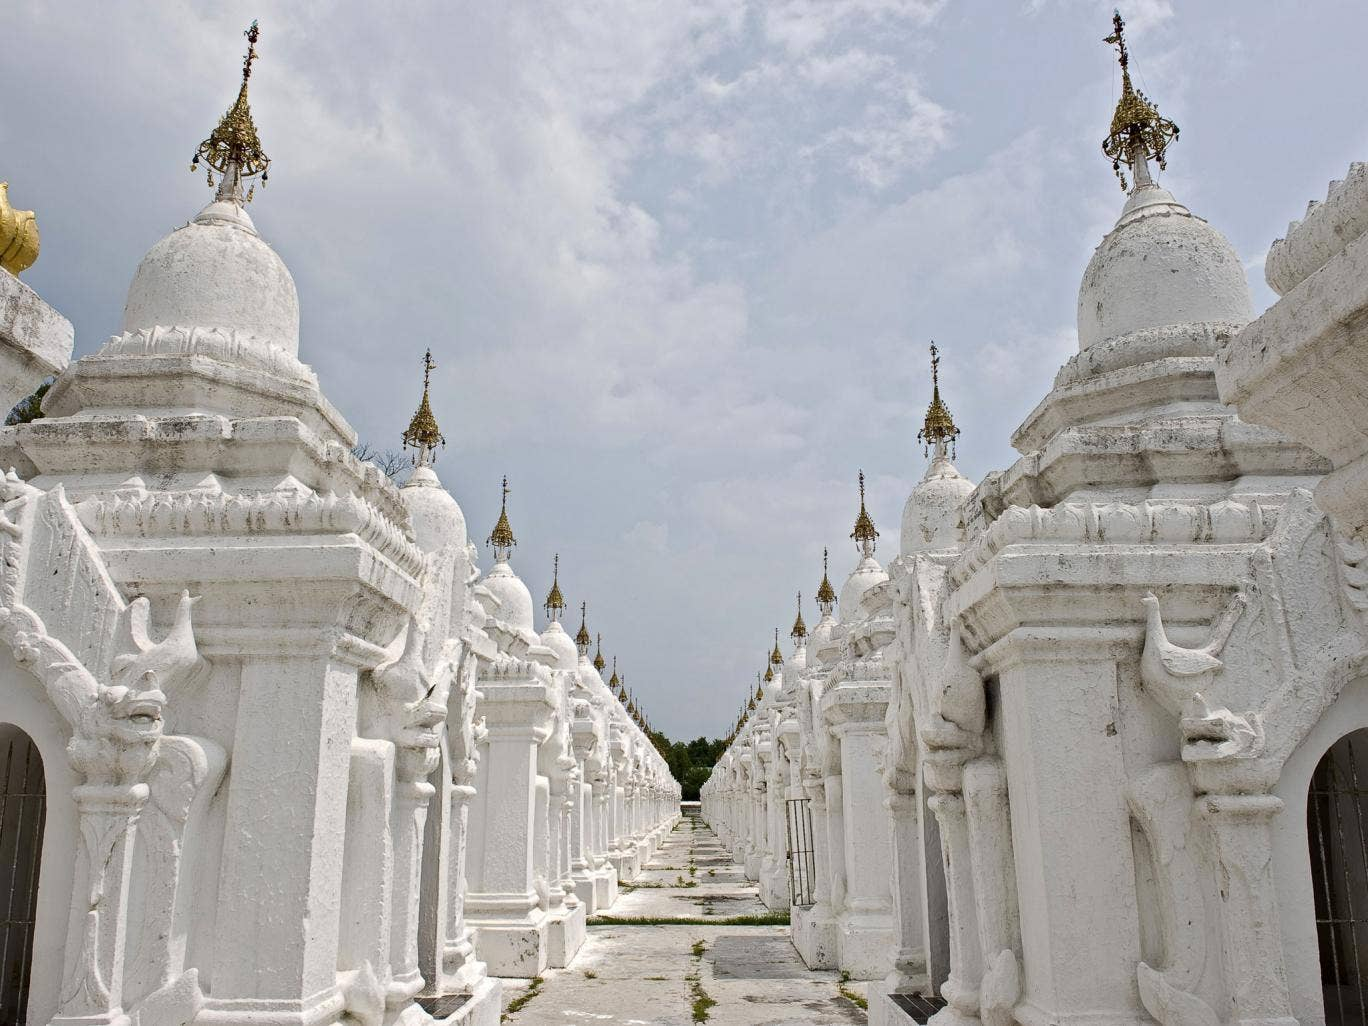 Some of the 729 stupas of the Kuthodaw pagoda in Mandalay. The pagoda contains the world's largest book, and lies at the foot of Mandalay Hill